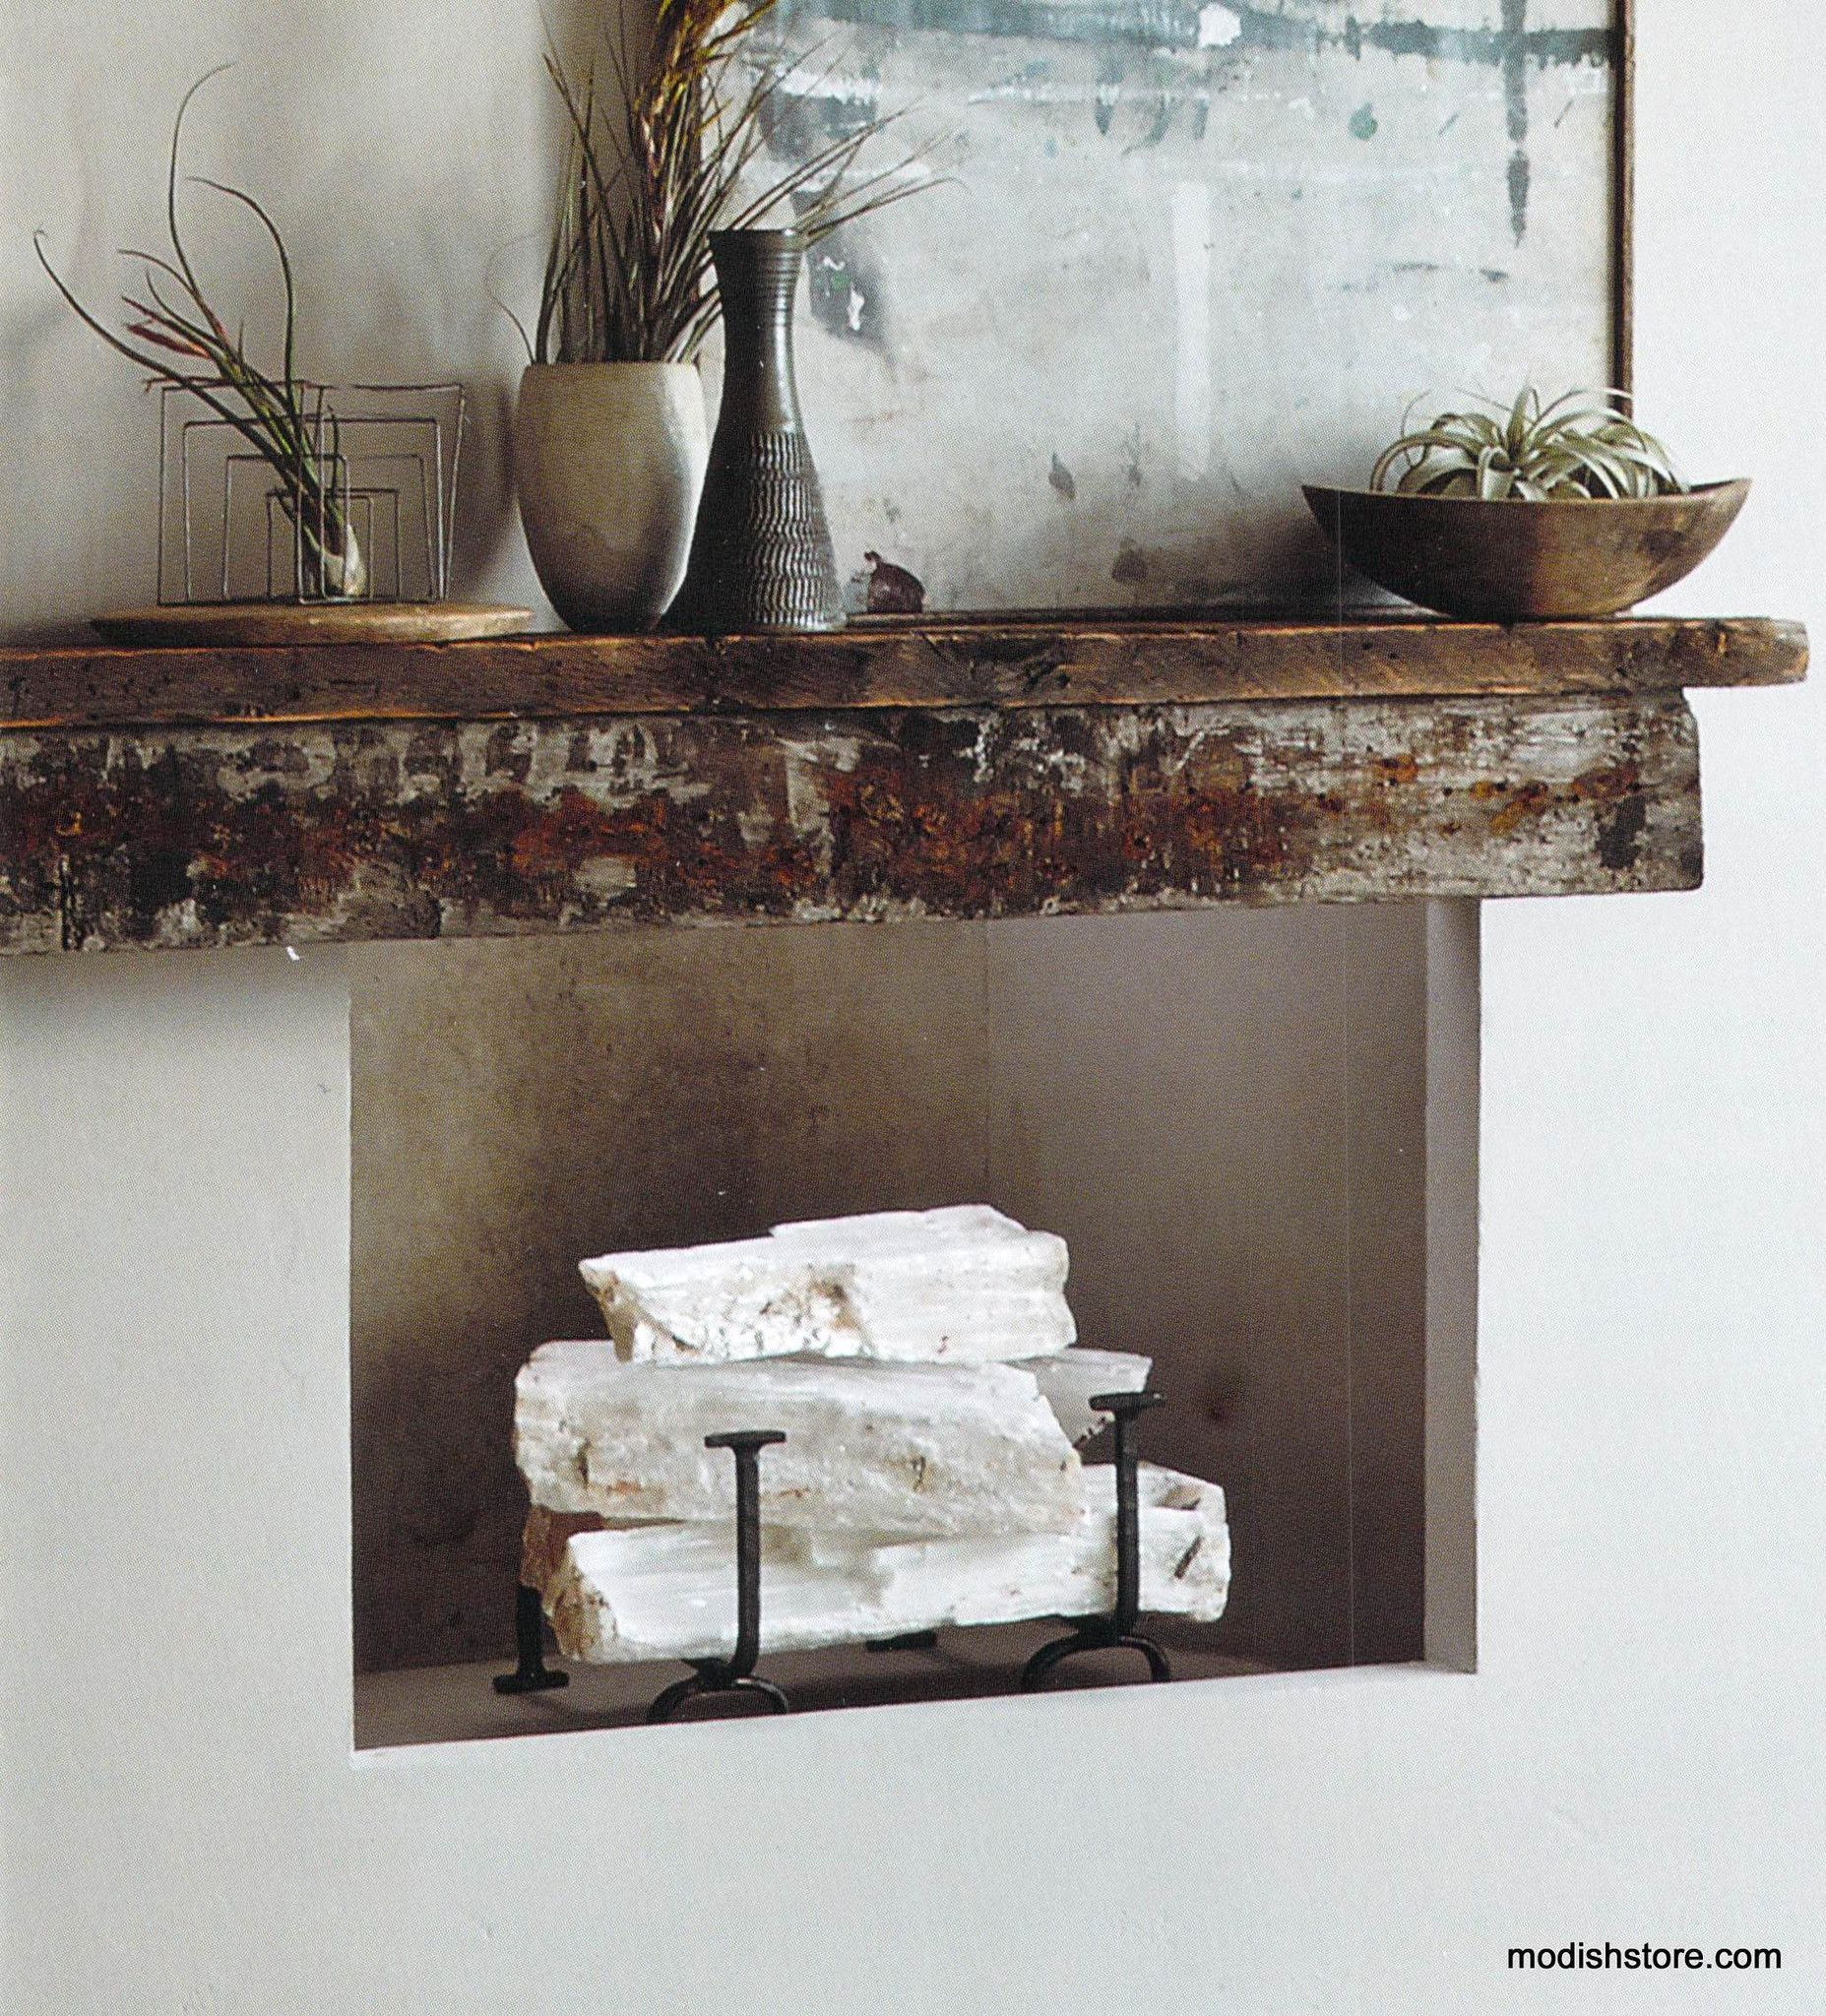 Add selenite logs to enliven your mantel and fireplace